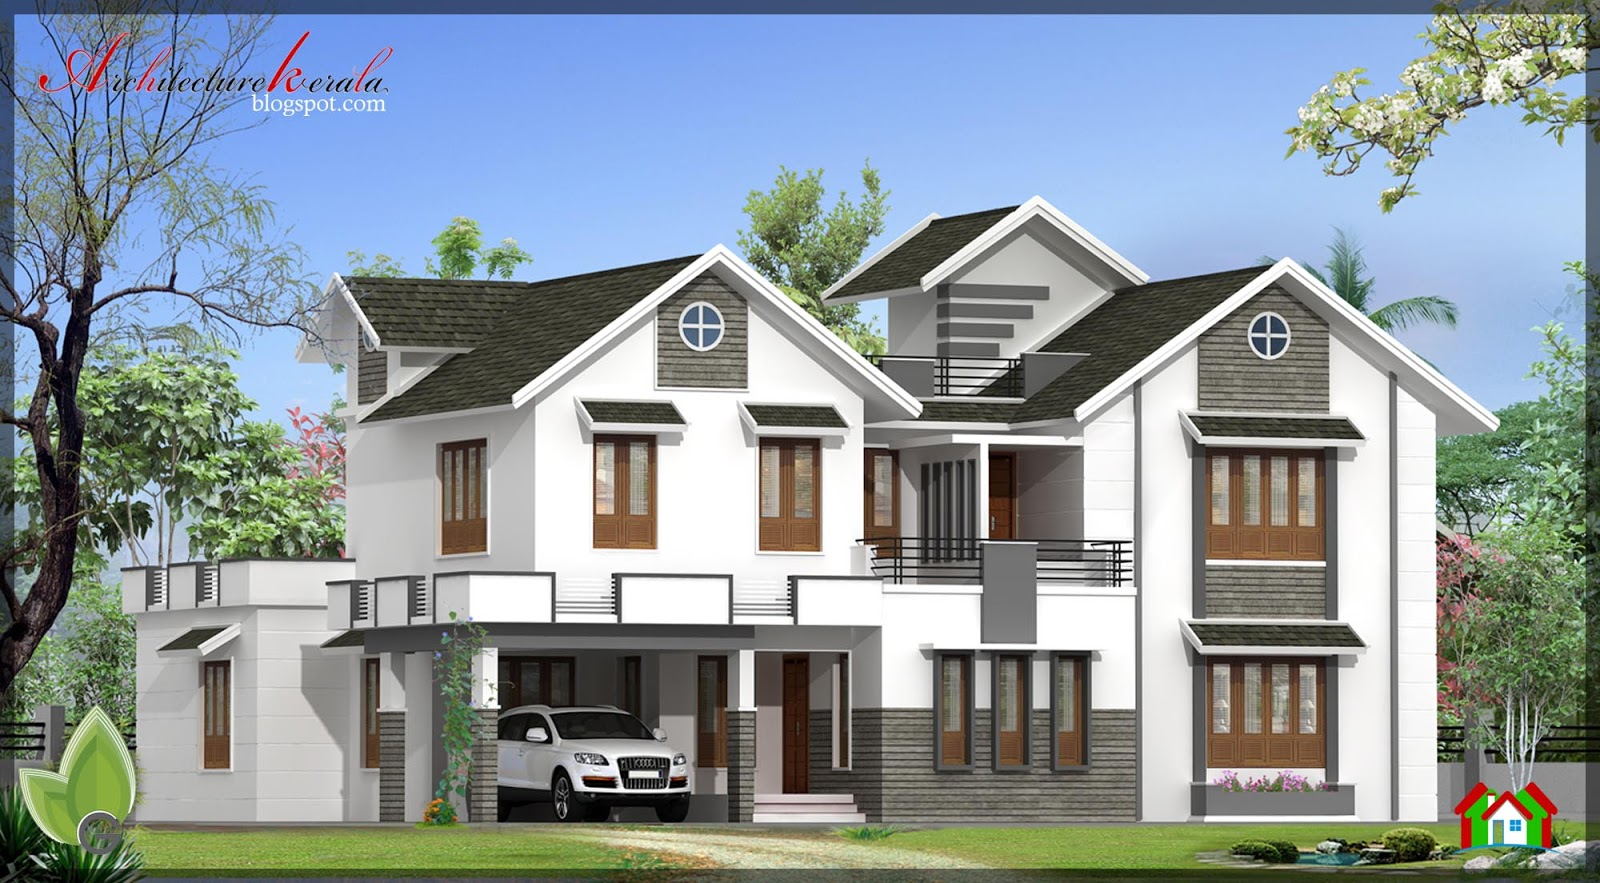 Architecture kerala 3000 sq ft house elevation for 3000 sq ft house cost